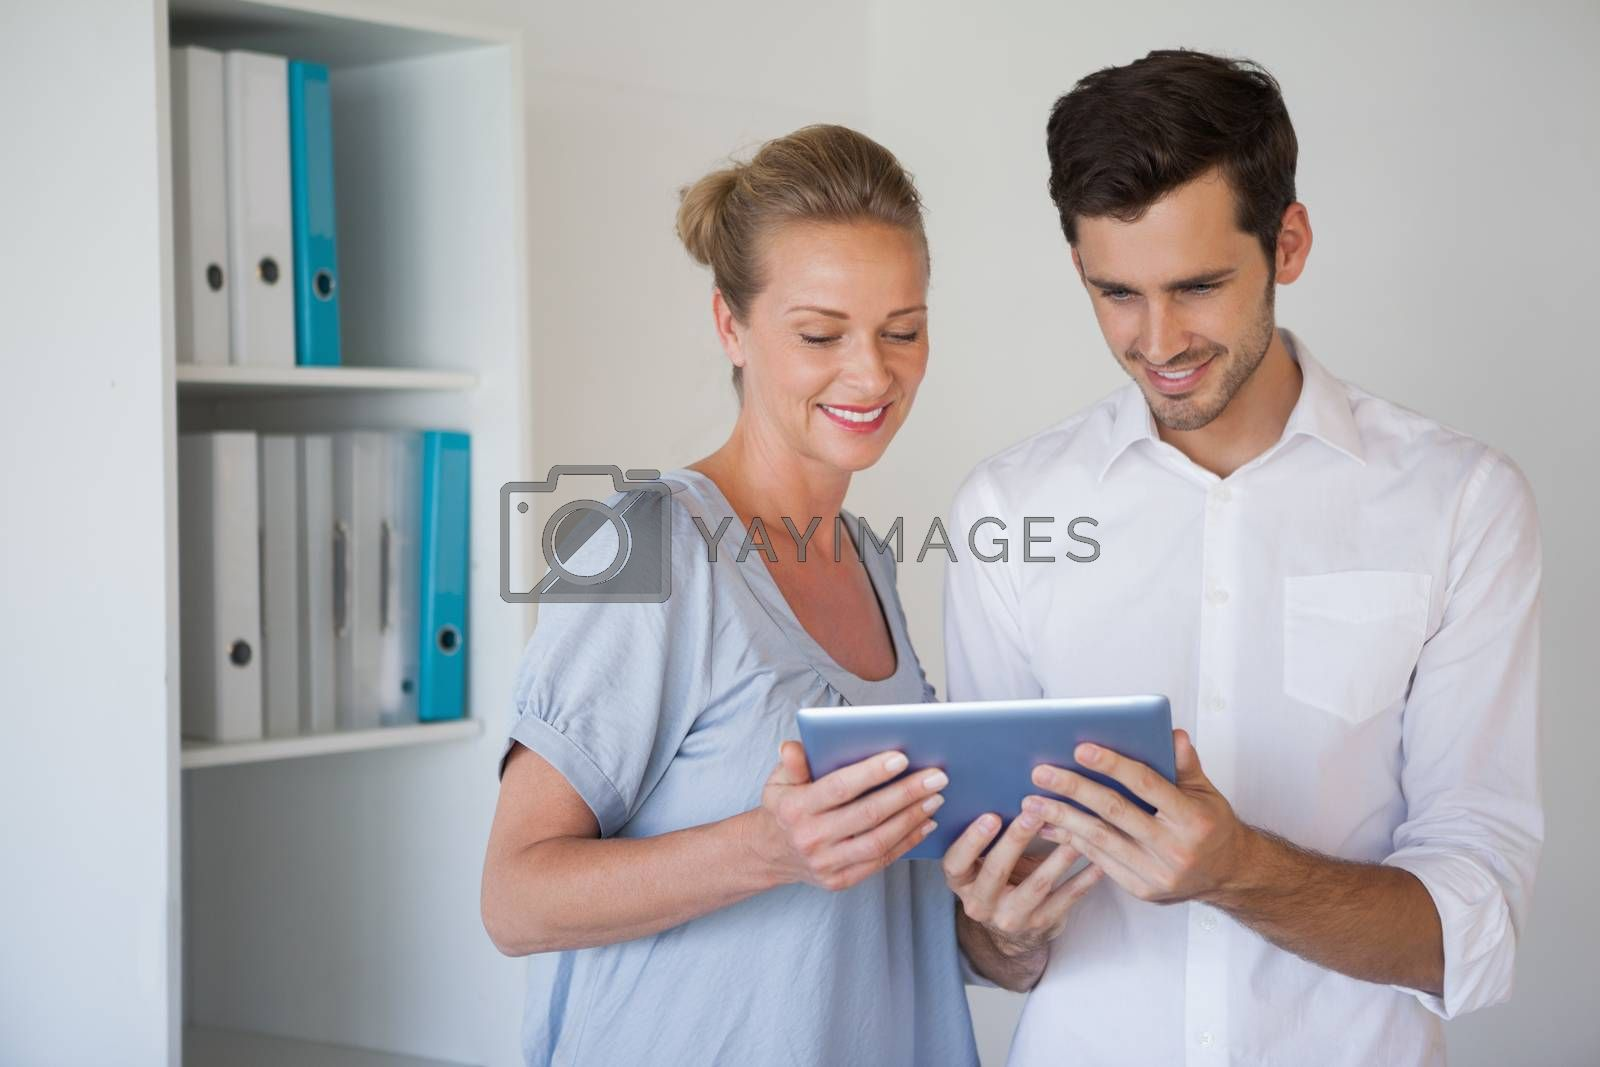 Royalty free image of Casual business team using tablet together by Wavebreakmedia